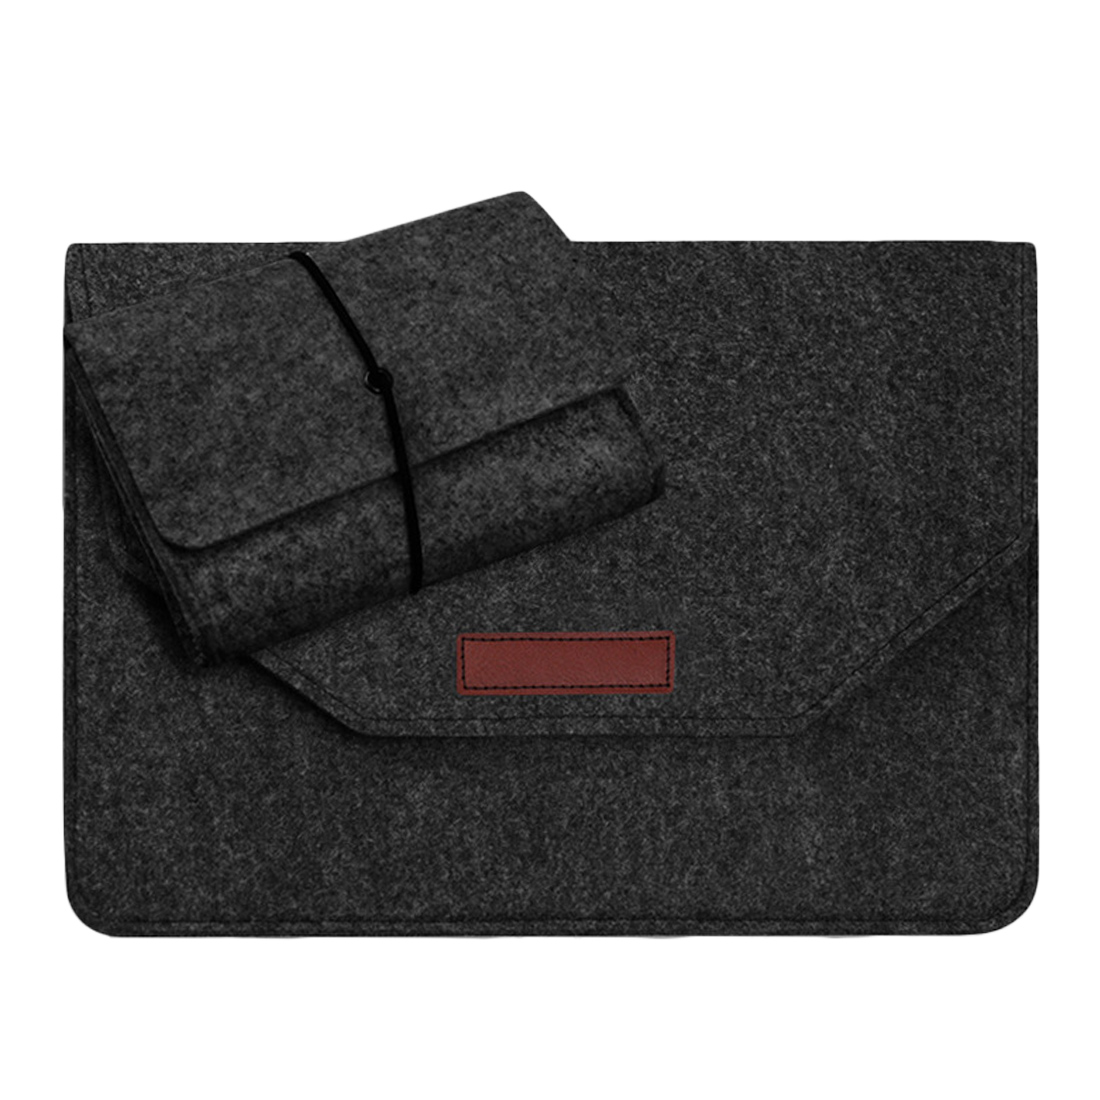 High Quality Soft Sleeve Bag Bussiness Wood Felt Case For Apple Macbook Air Pro Retina 11 13 15 Laptop For Mac Book 13.3 Inch